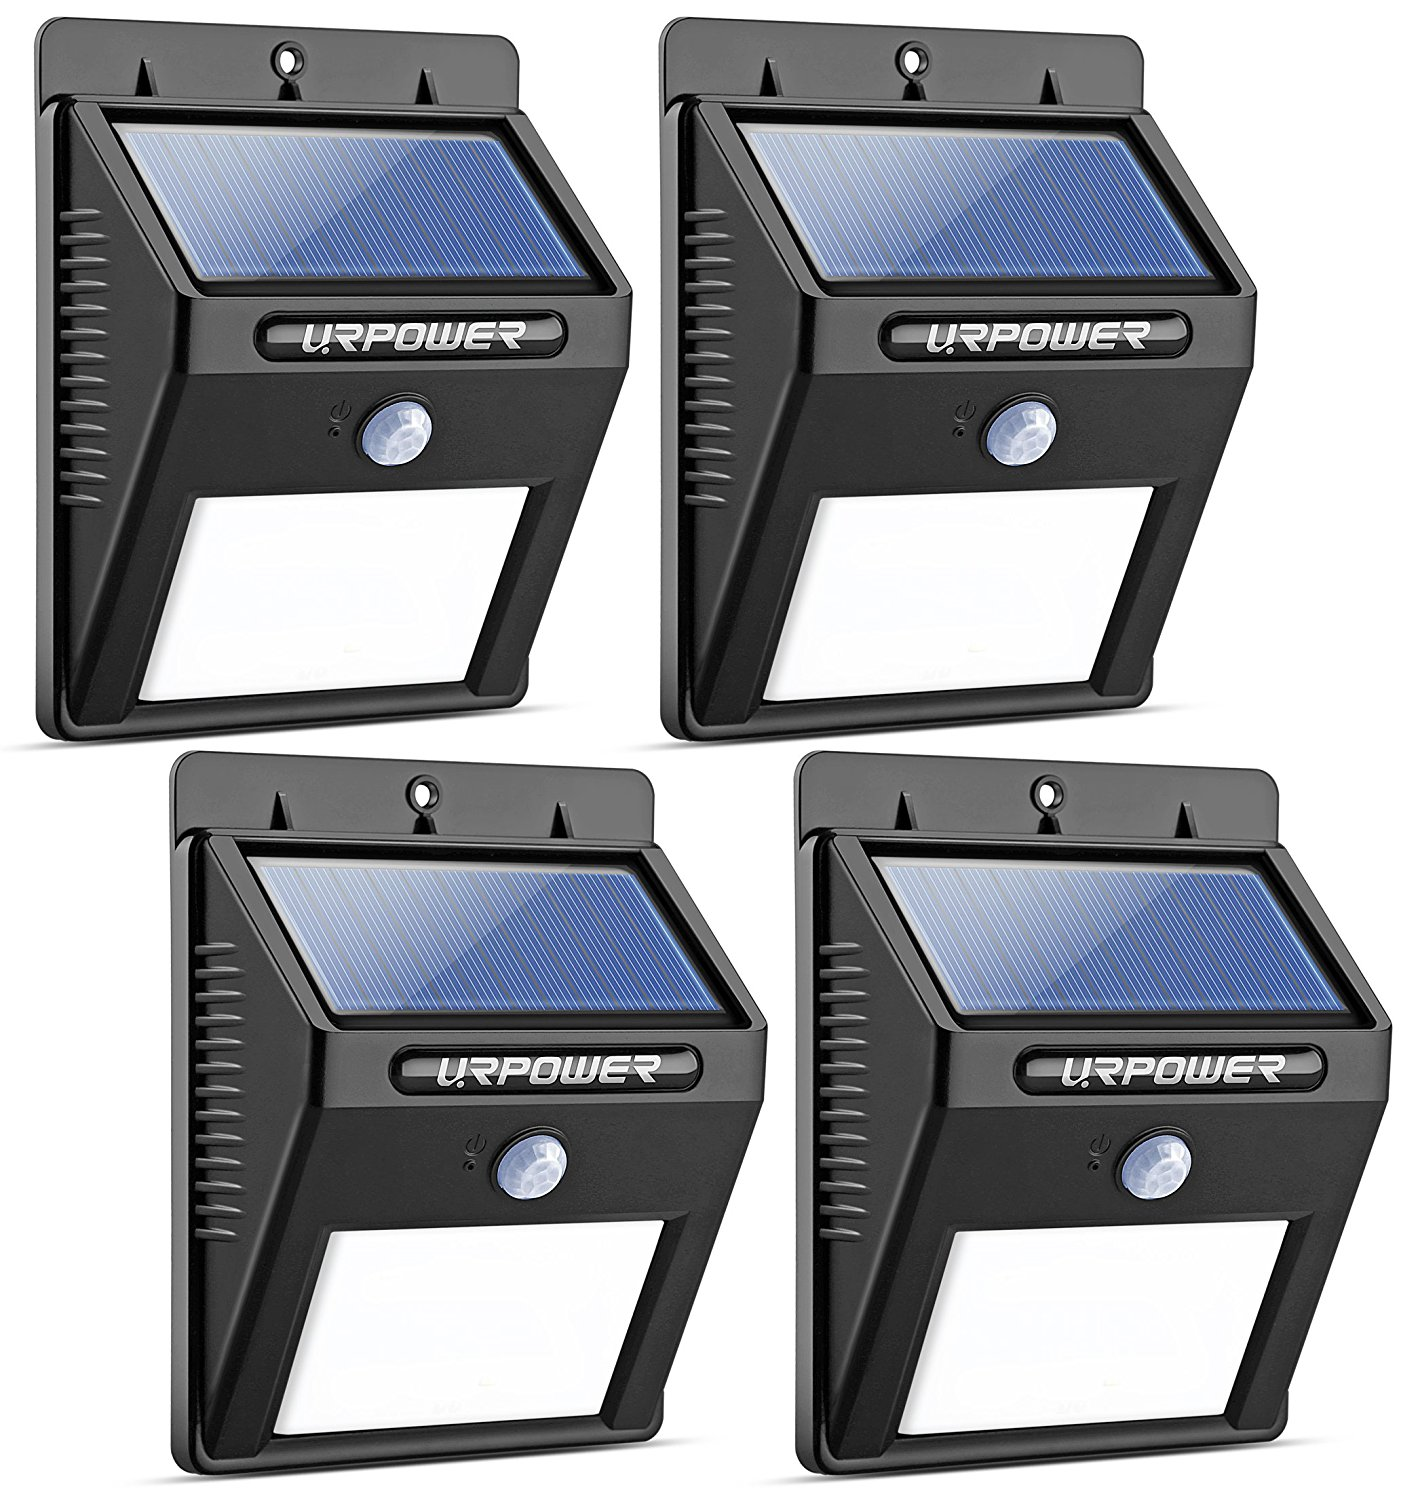 sensor led outdoor light ie lights en powered solar lighting mahra wall